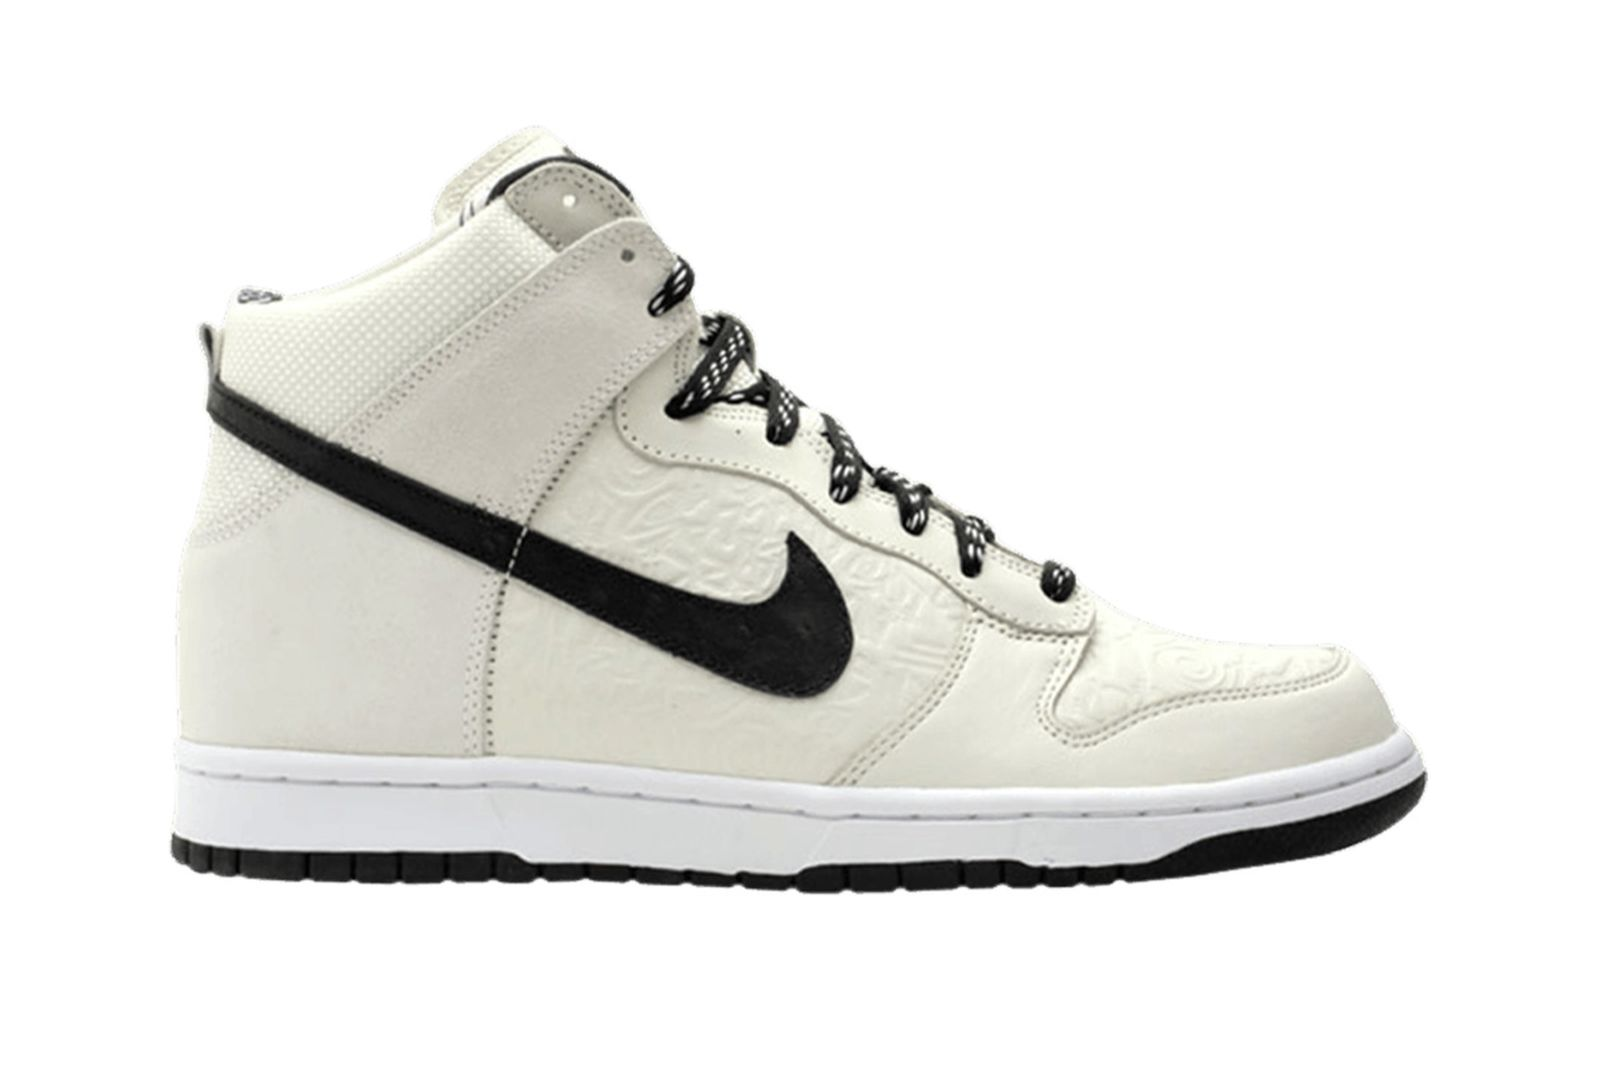 stussy-nike-sneaker-collaboration-roundup-06